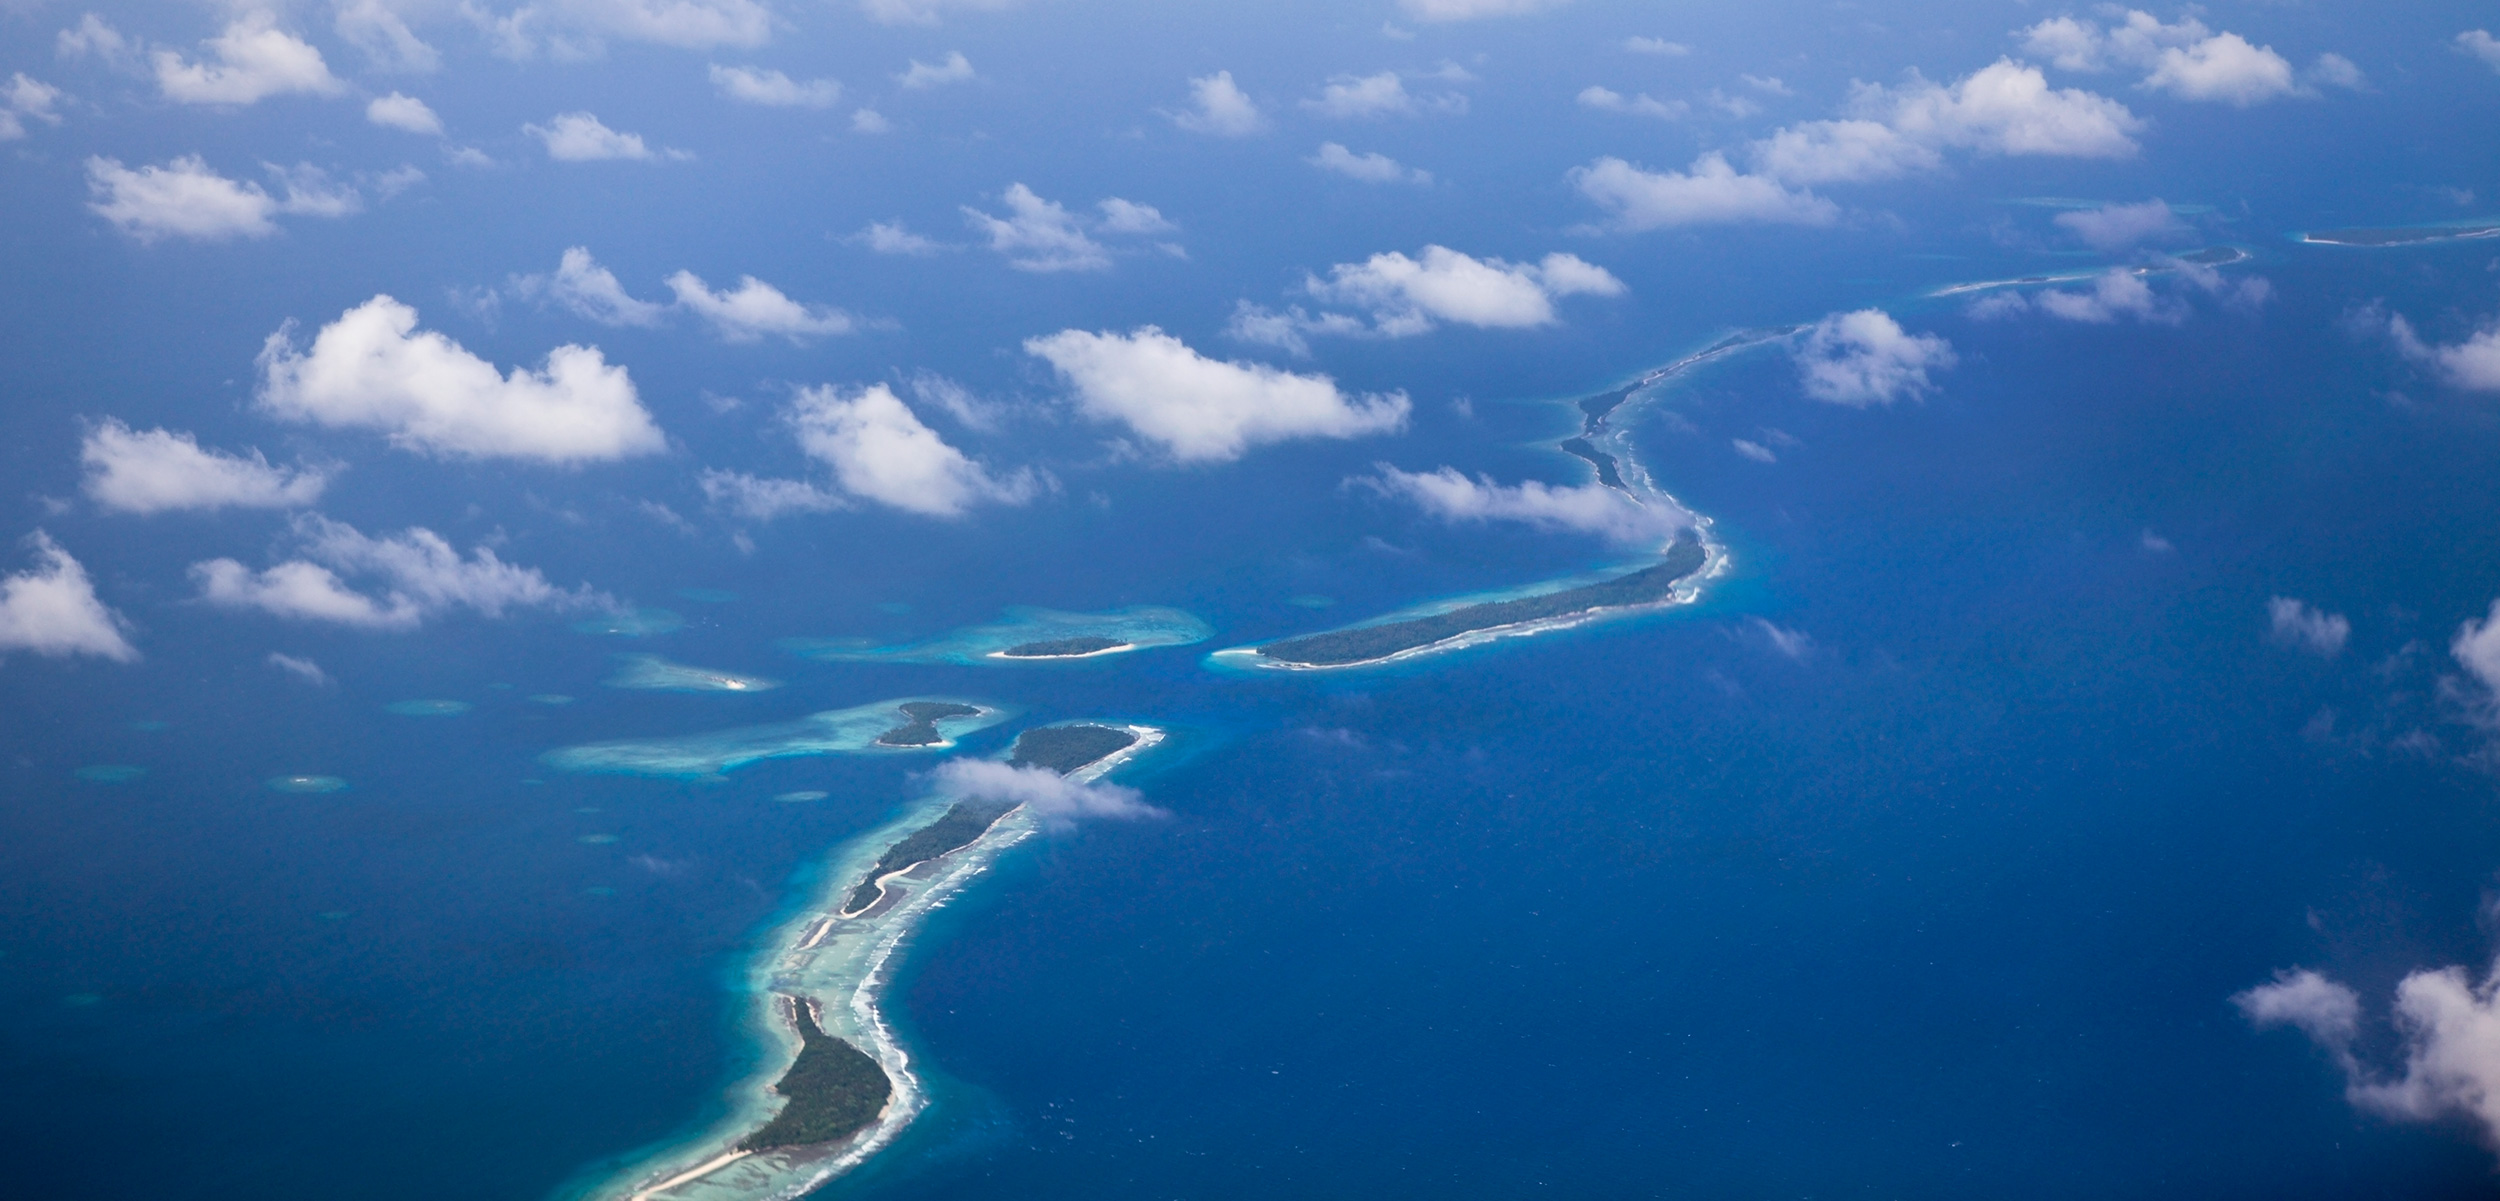 An aerial view of Kwajalein Atoll in the Marshall Islands. The independent nation is comprised of 1,200 islands in the Pacific Ocean with an average elevation of two meters above sea level. Photo by Visuals Unlimited/Corbis